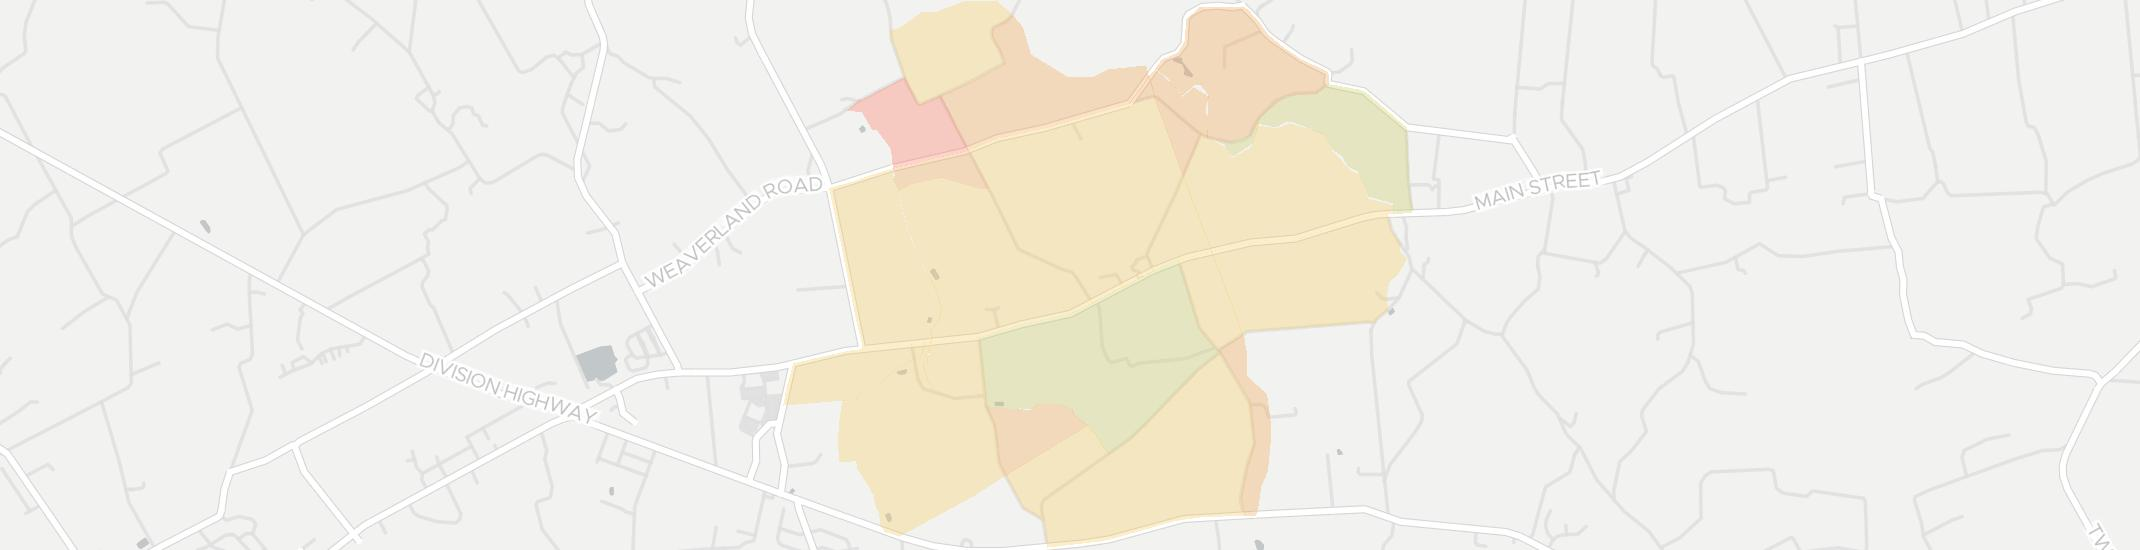 Goodville Internet Competition Map. Click for interactive map.